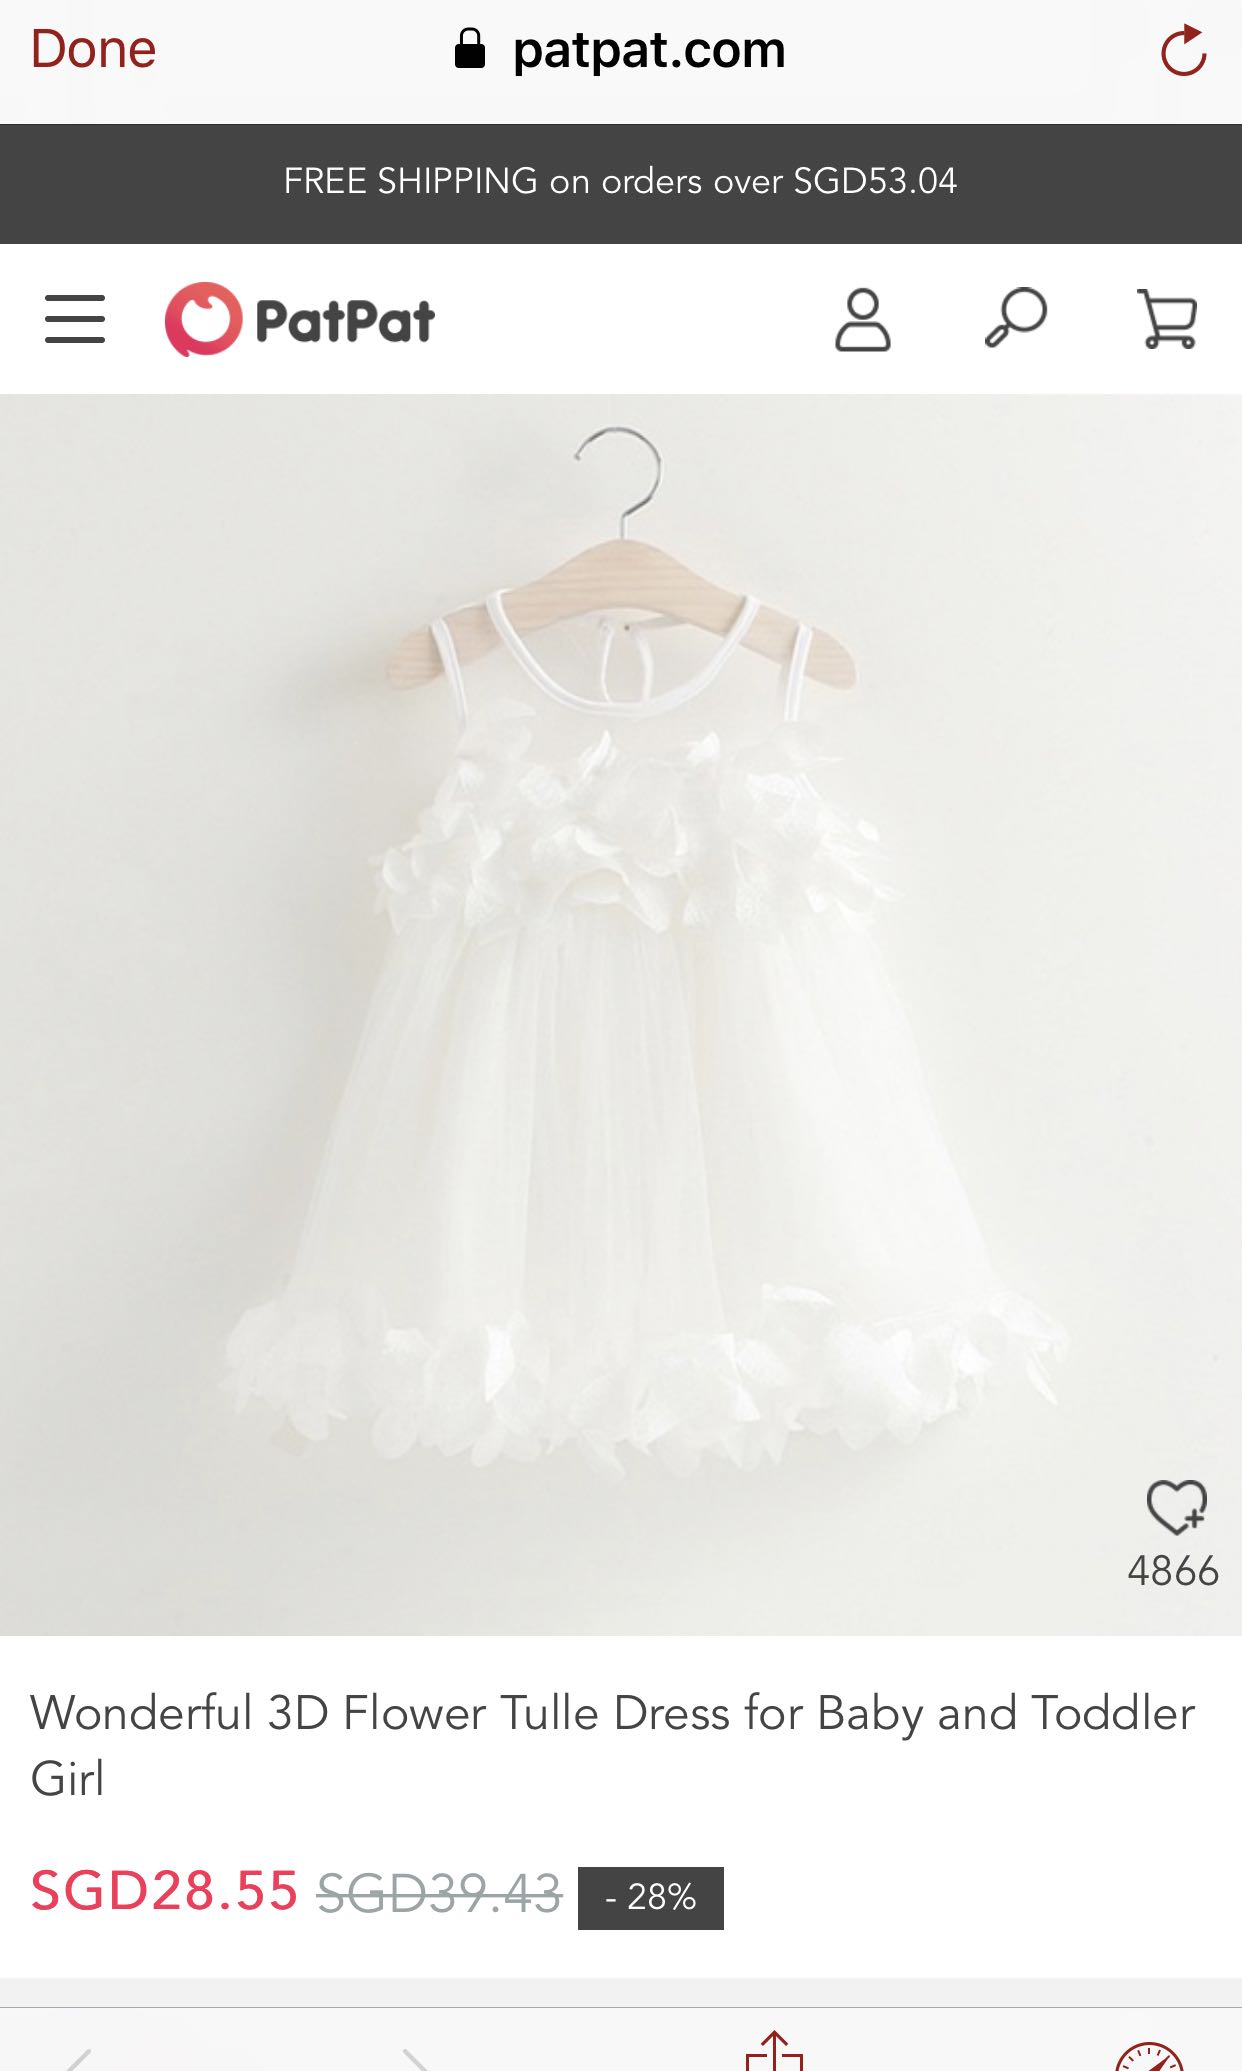 24a924af94e Patpat 💕Wonderful 3D Flower Tulle Dress for Baby and Toddler Girl ...